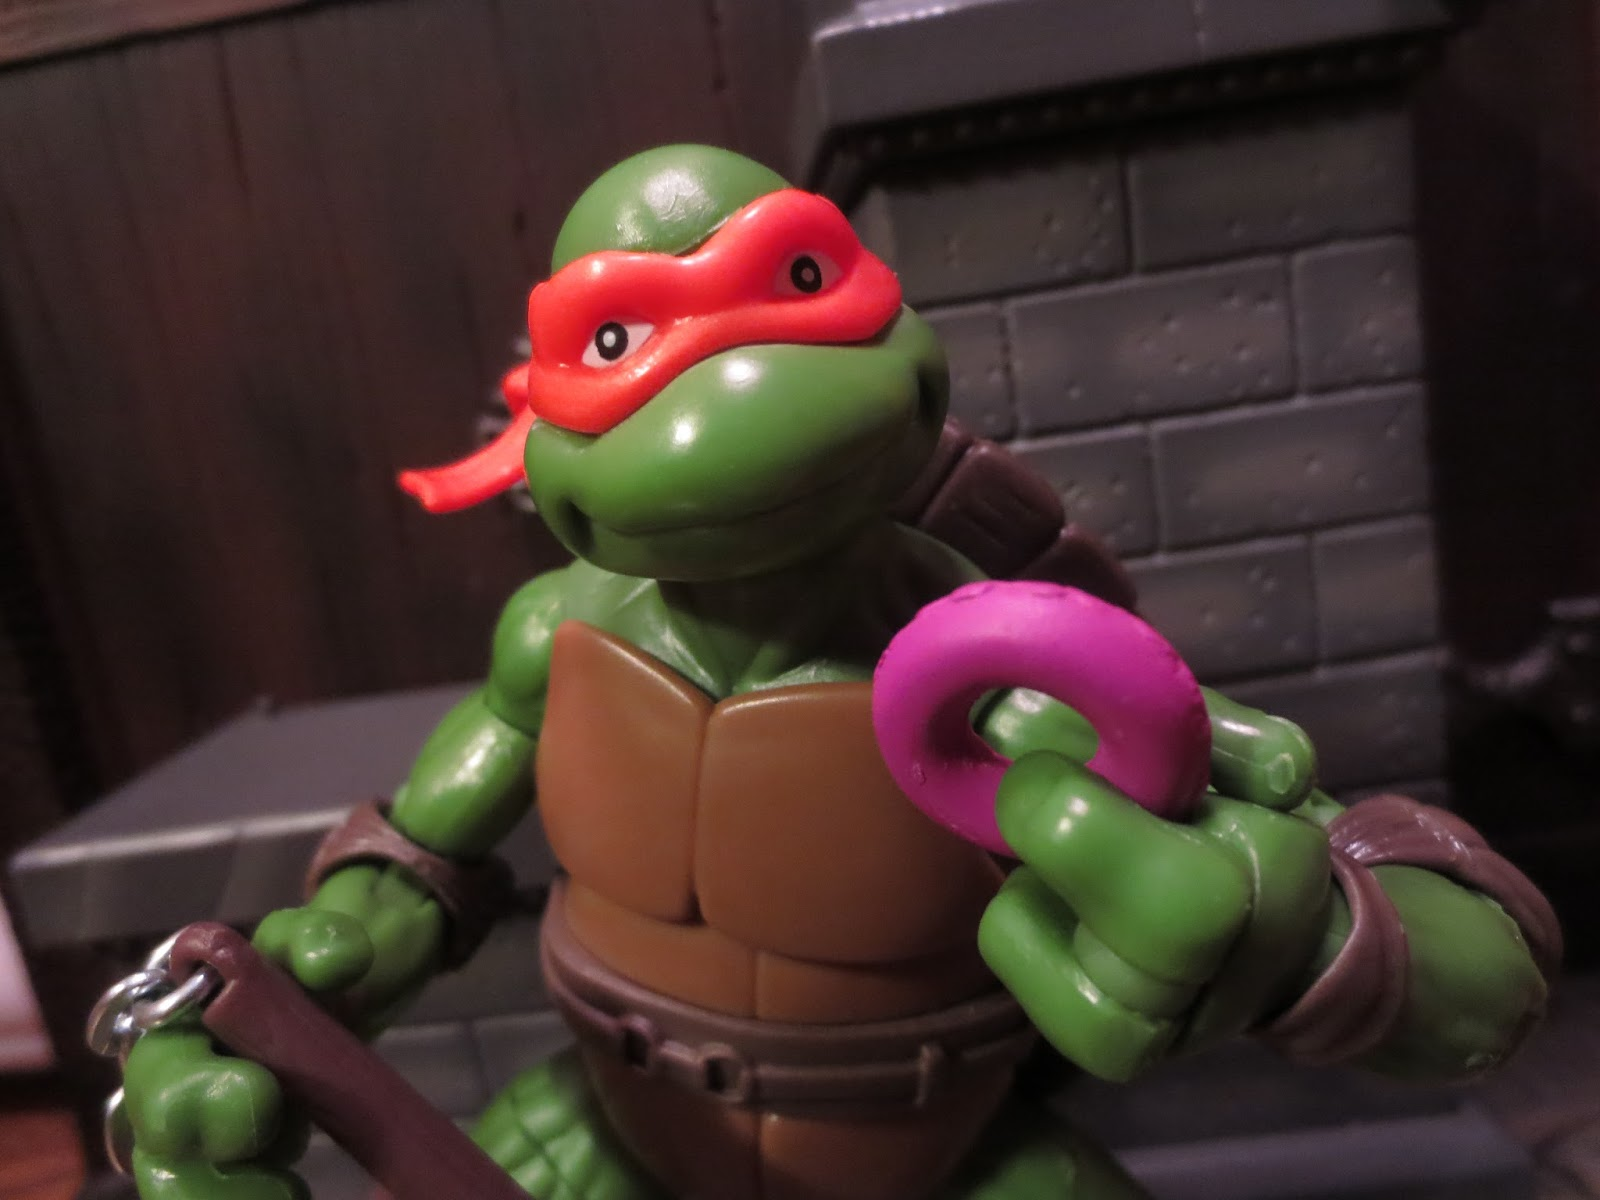 Retro review teenage mutant ninja turtles ii secret of the ooze - Action Figure Review Michelangelo From Teenage Mutant Ninja Turtles Classic Collection The Secret Of The Ooze By Playmates Toys